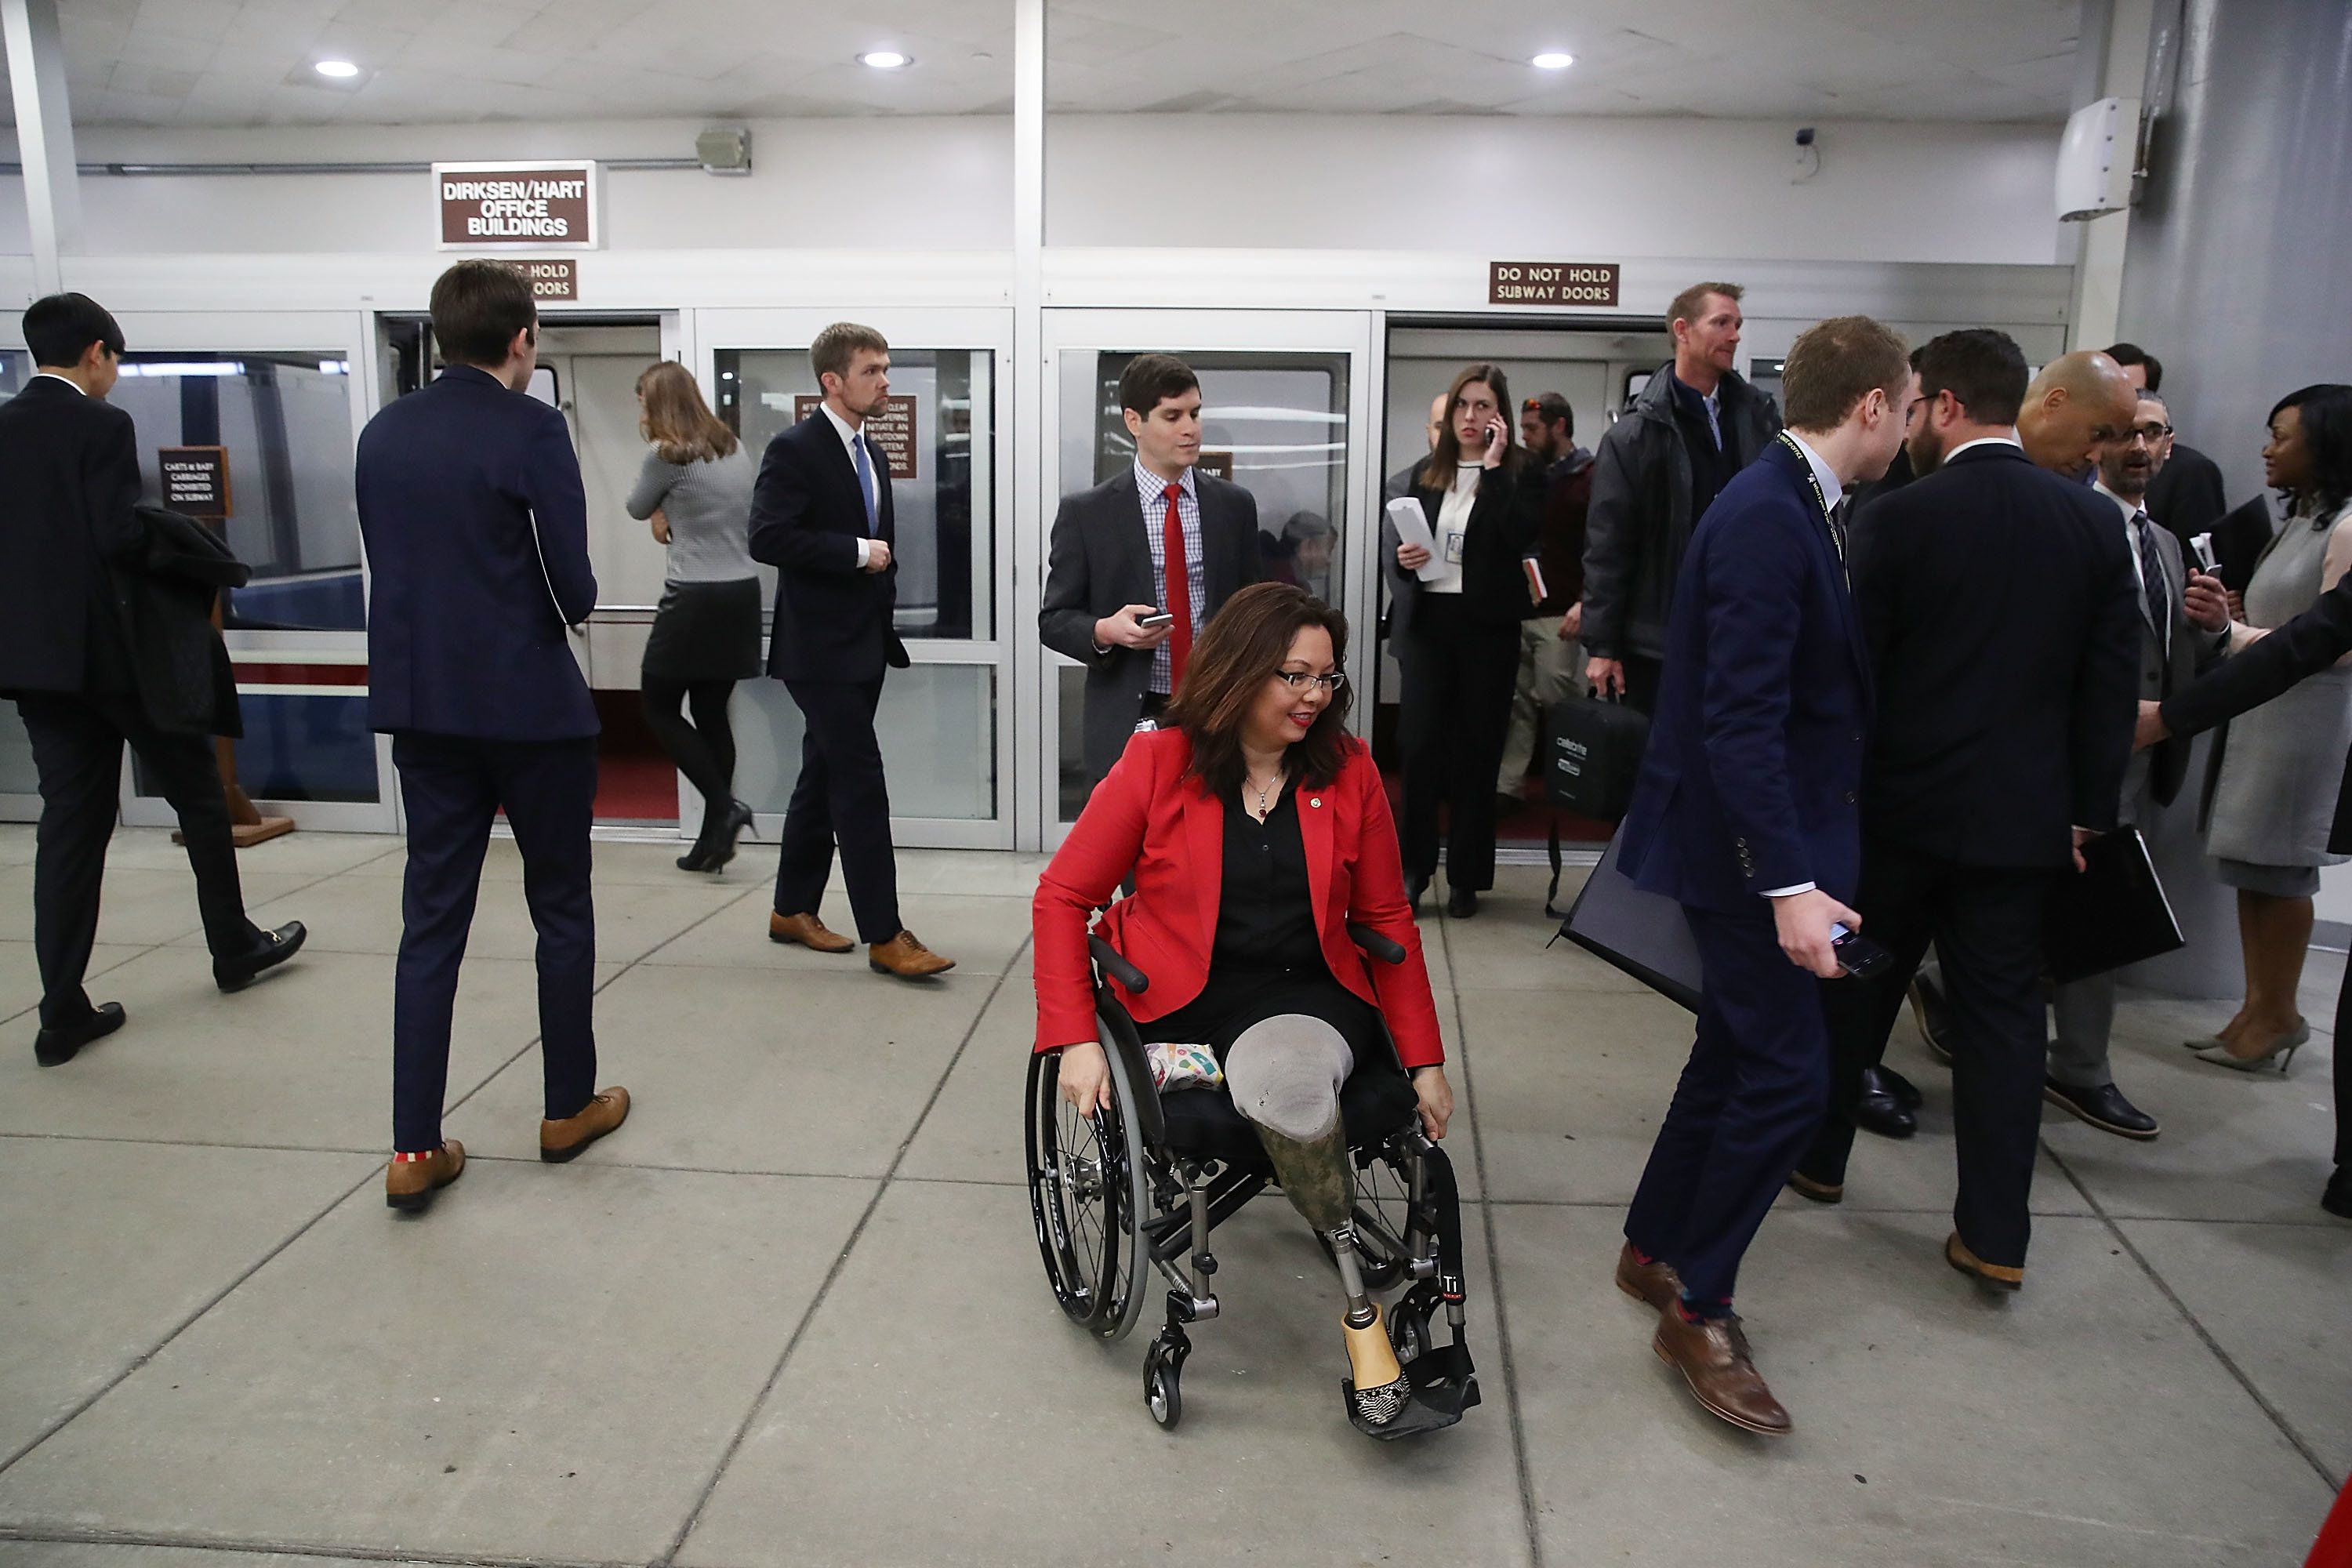 WASHINGTON, DC - JANUARY 31:  Sen. Tammy Duckworth (D-IL) travels to the Senate Chamber for a vote on Capitol Hill, January 31, 2017 in Washington, DC.  The Senate voted 93-6 to confirm Elaine Chao to head the Transportation Department.  (Photo by Mark Wilson/Getty Images)